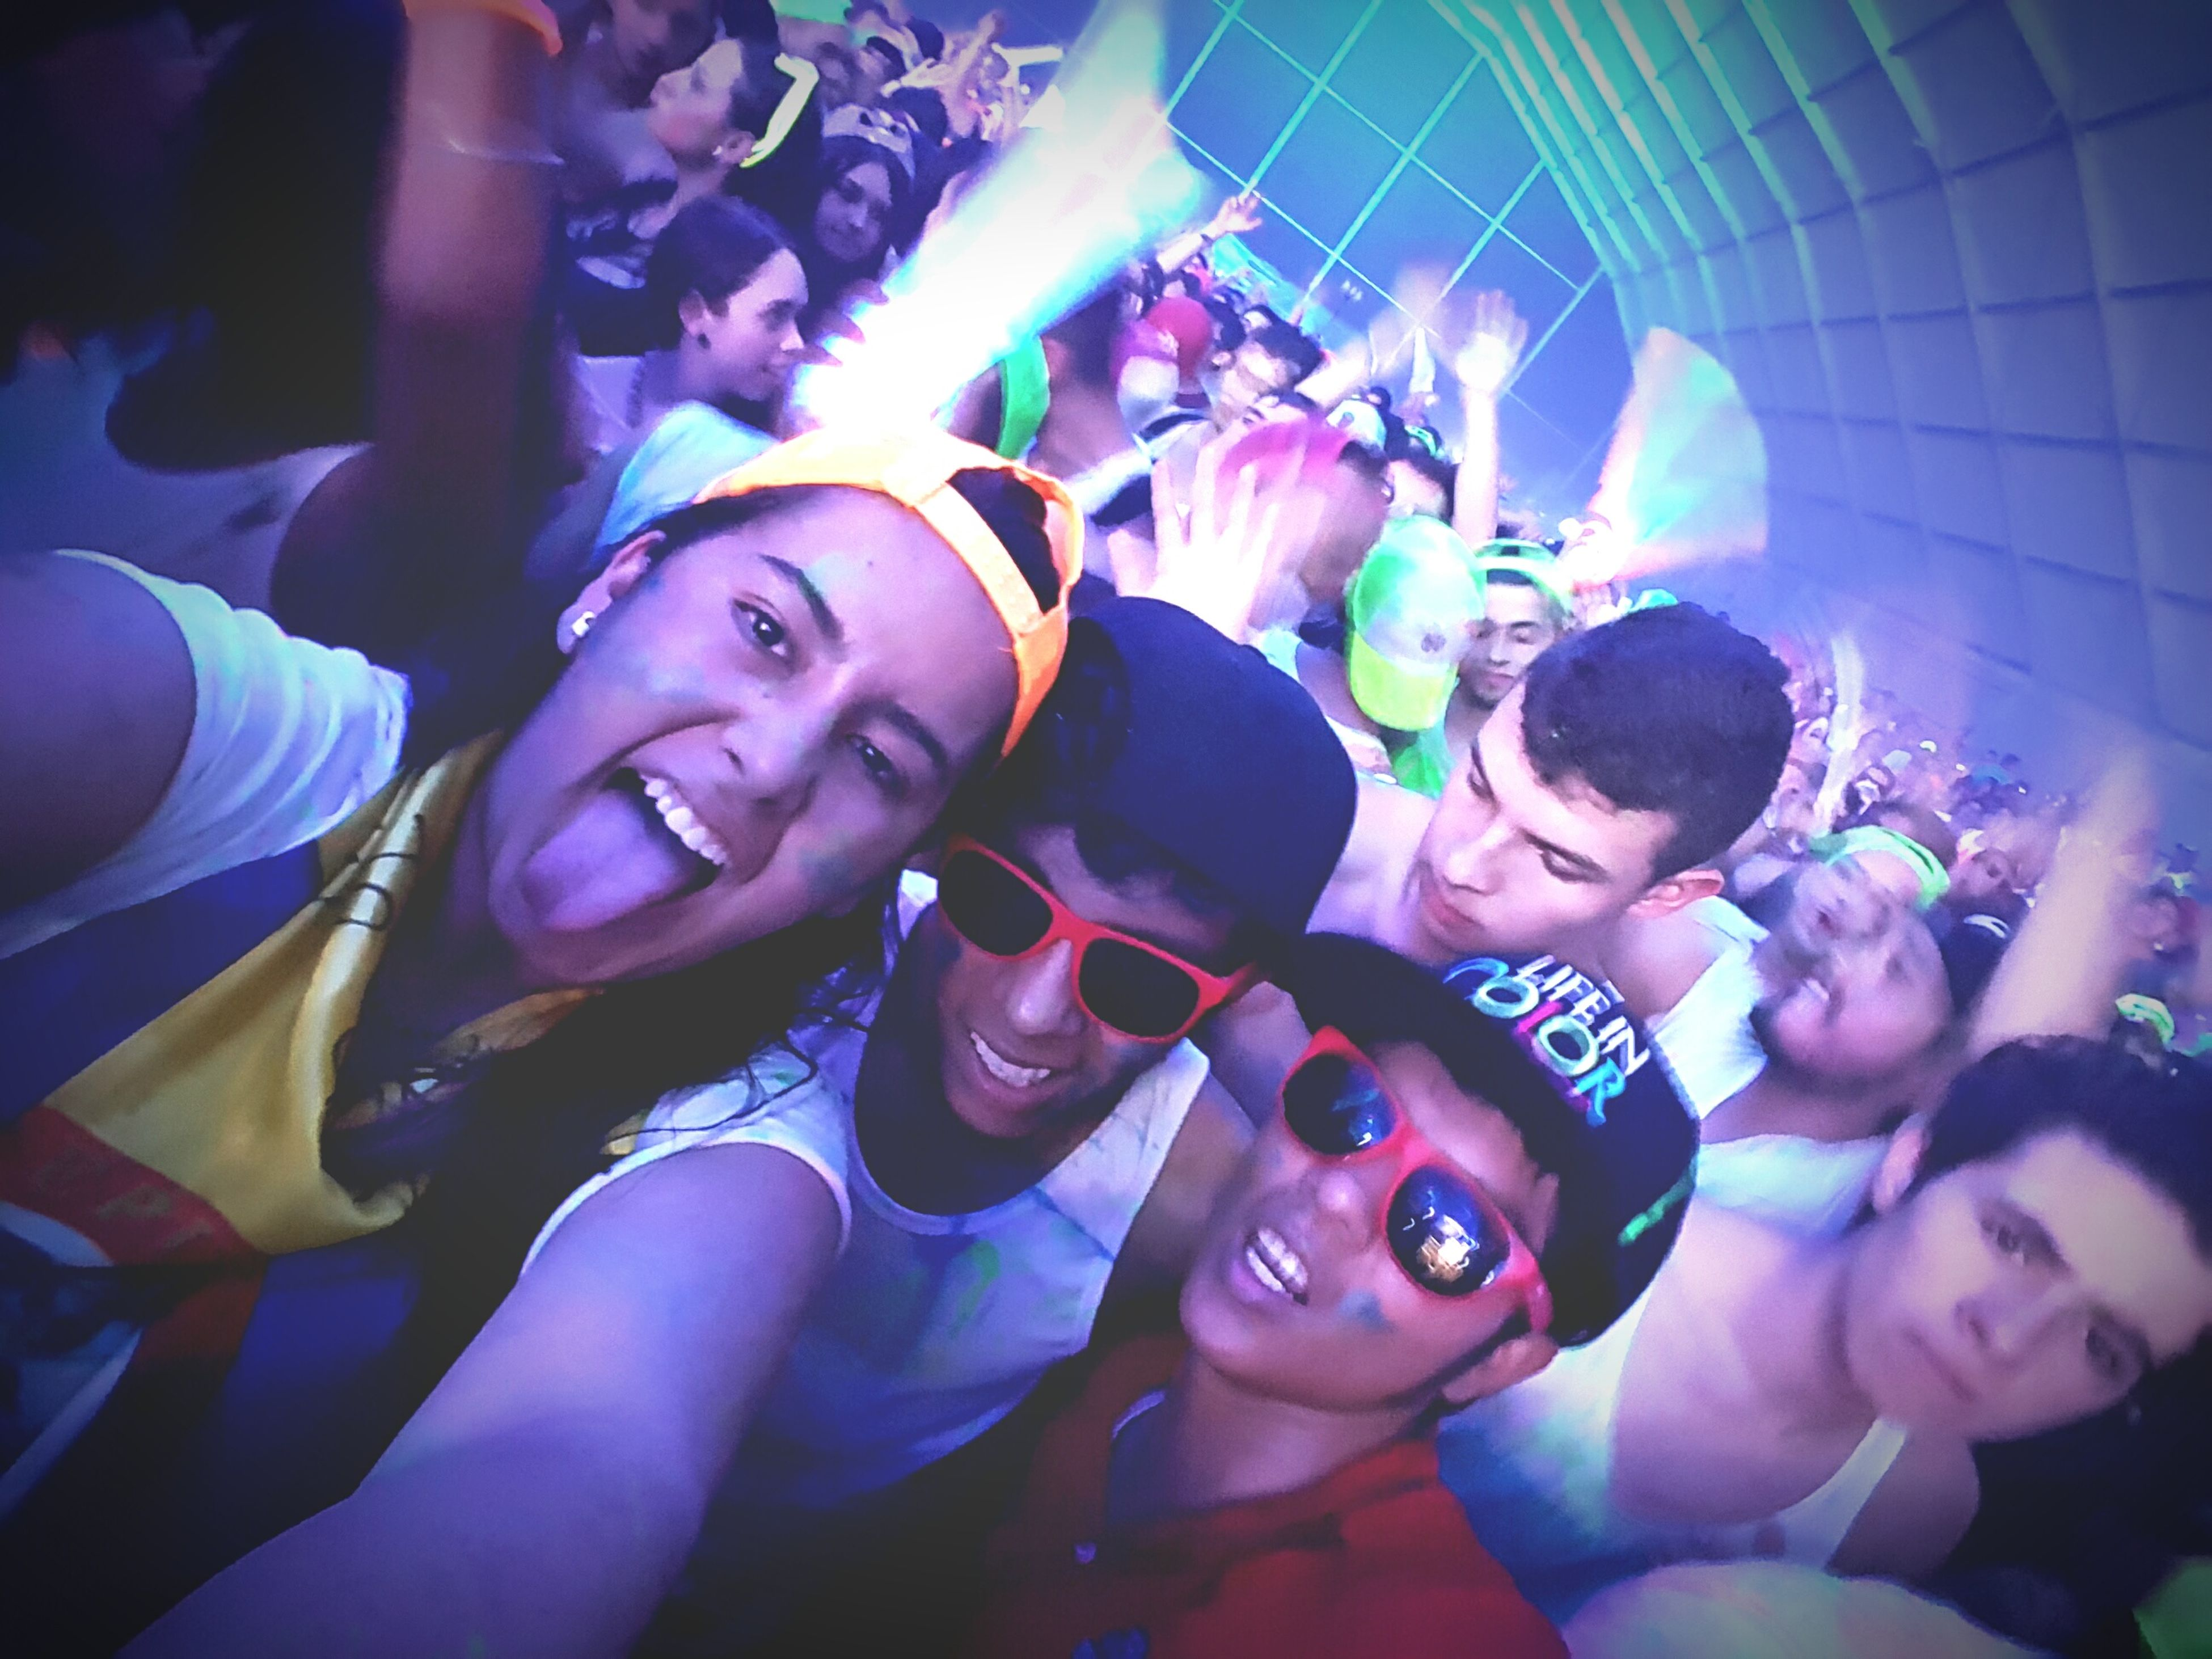 indoors, lifestyles, leisure activity, enjoyment, fun, illuminated, arts culture and entertainment, person, celebration, happiness, large group of people, togetherness, event, portrait, performance, night, nightlife, youth culture, casual clothing